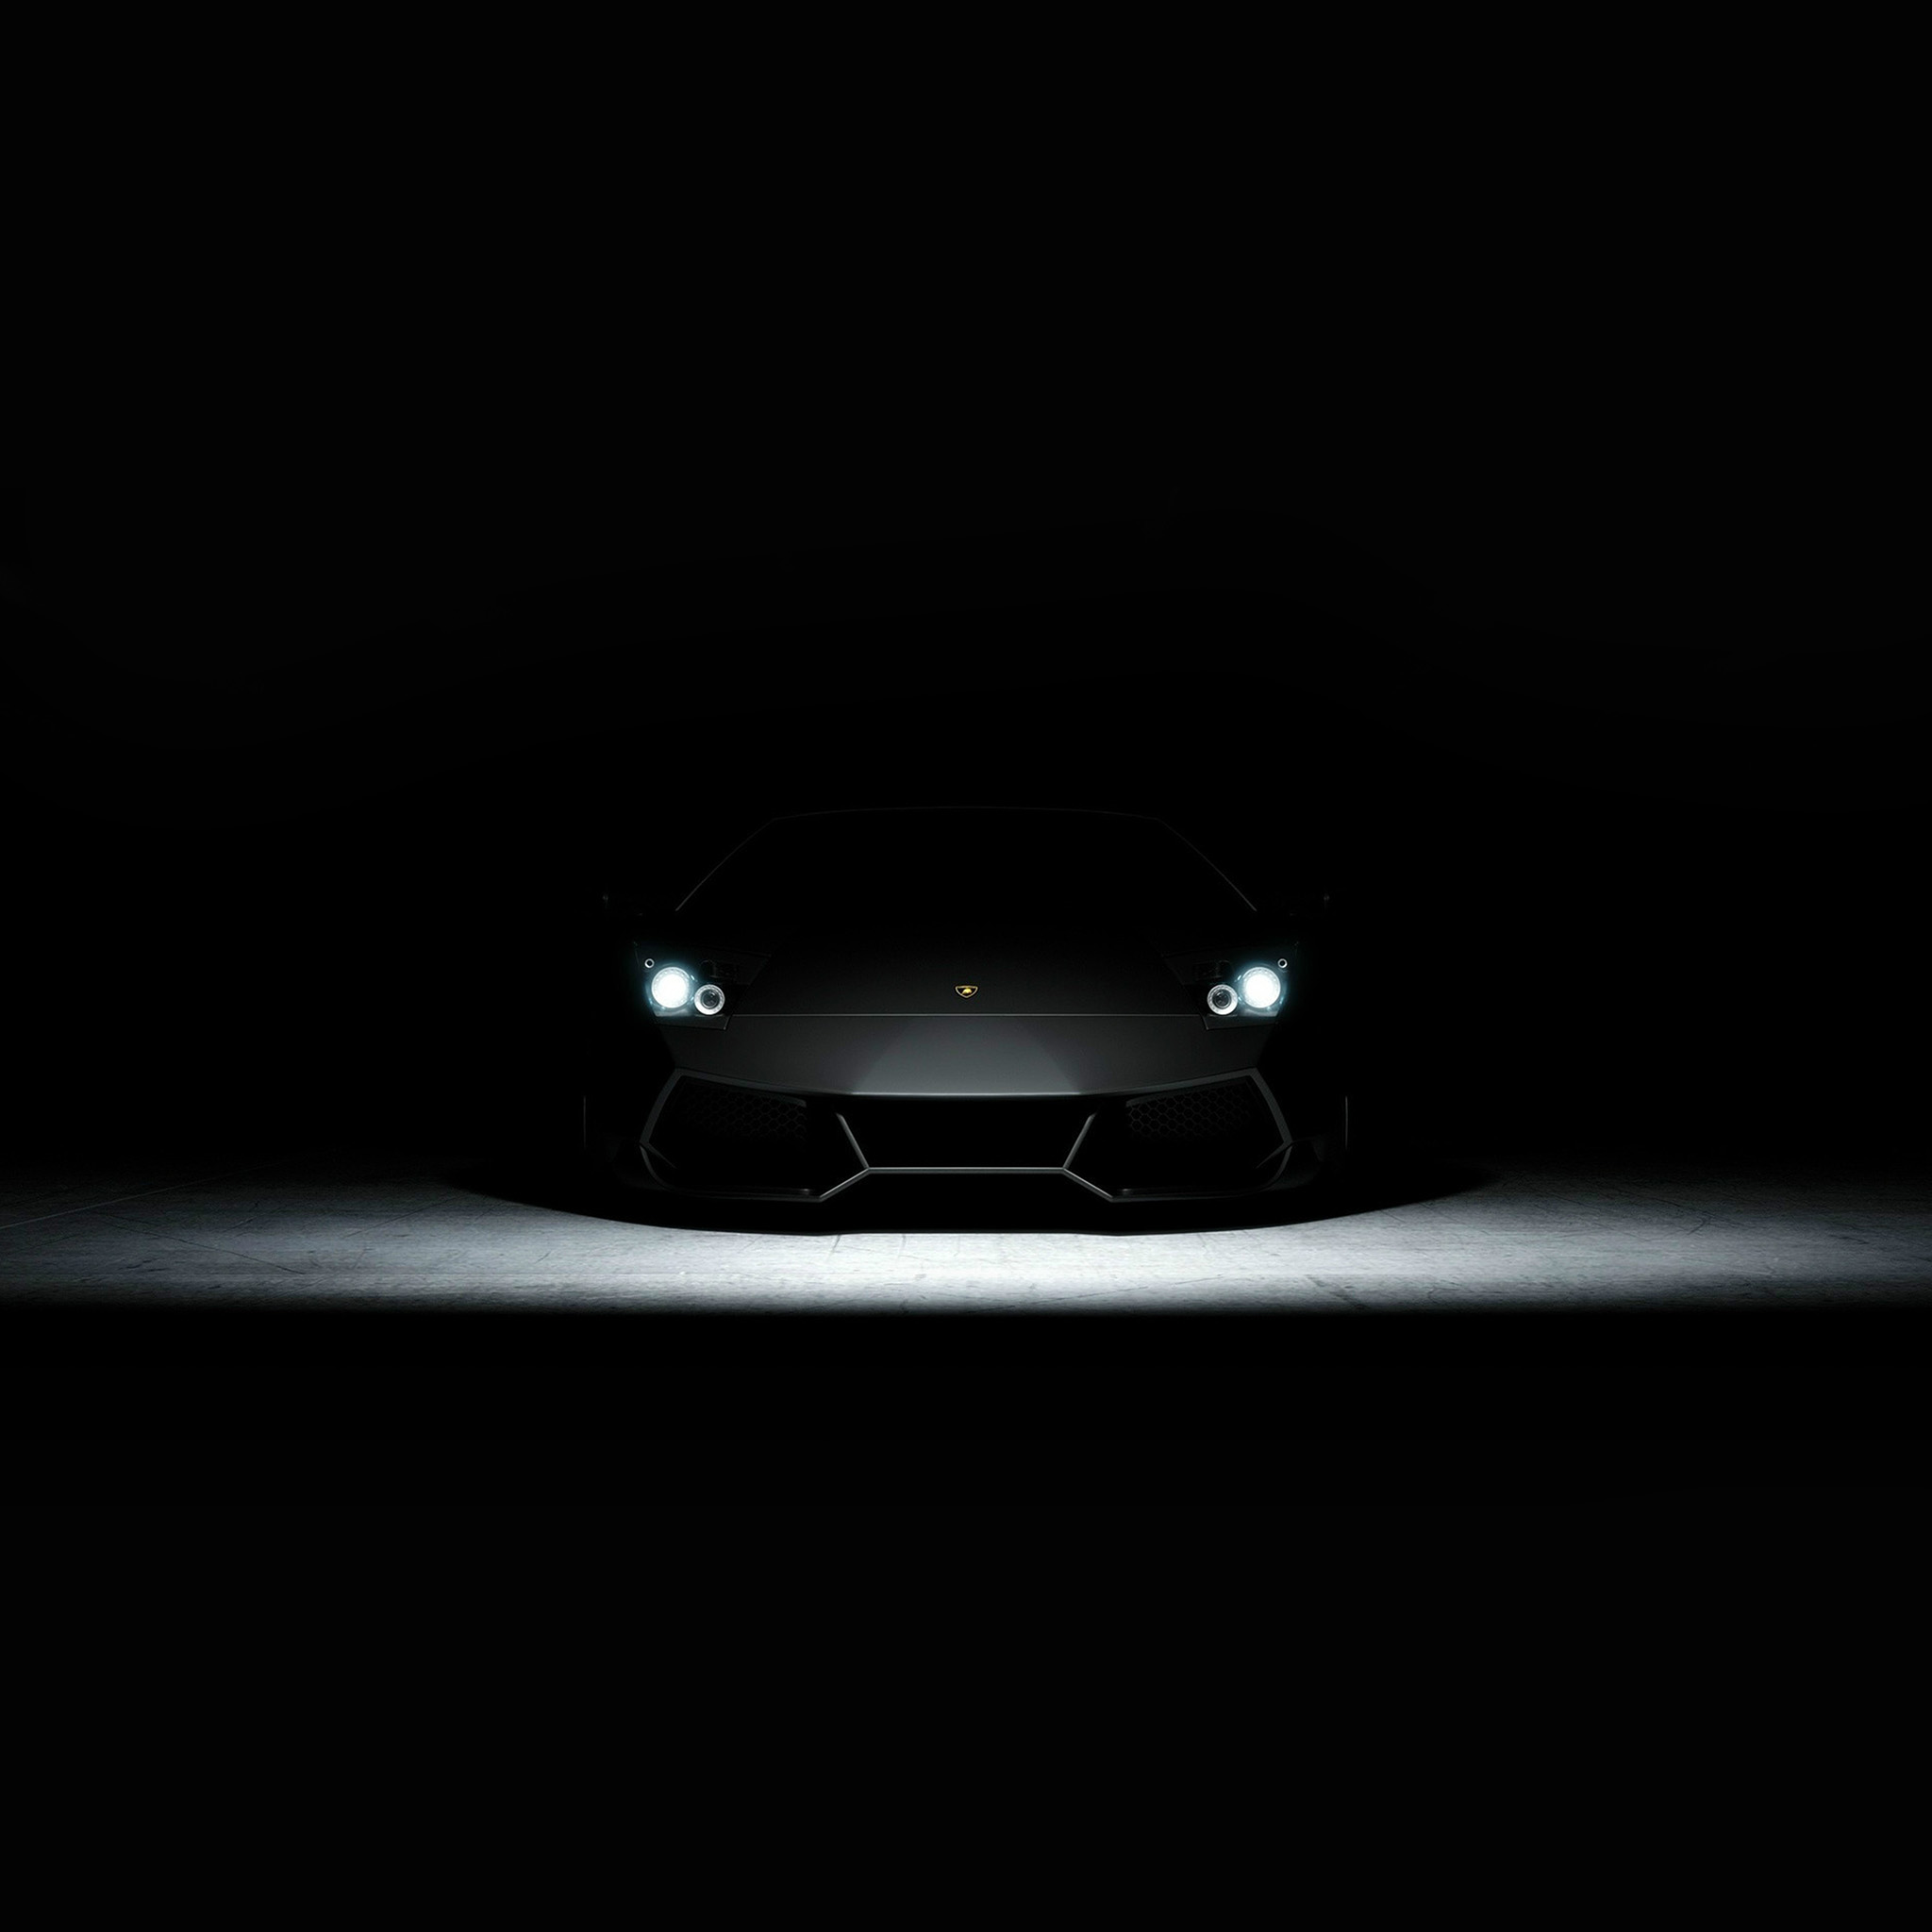 bd23-car-dark-lamborghini-art-illustration-wallpaper